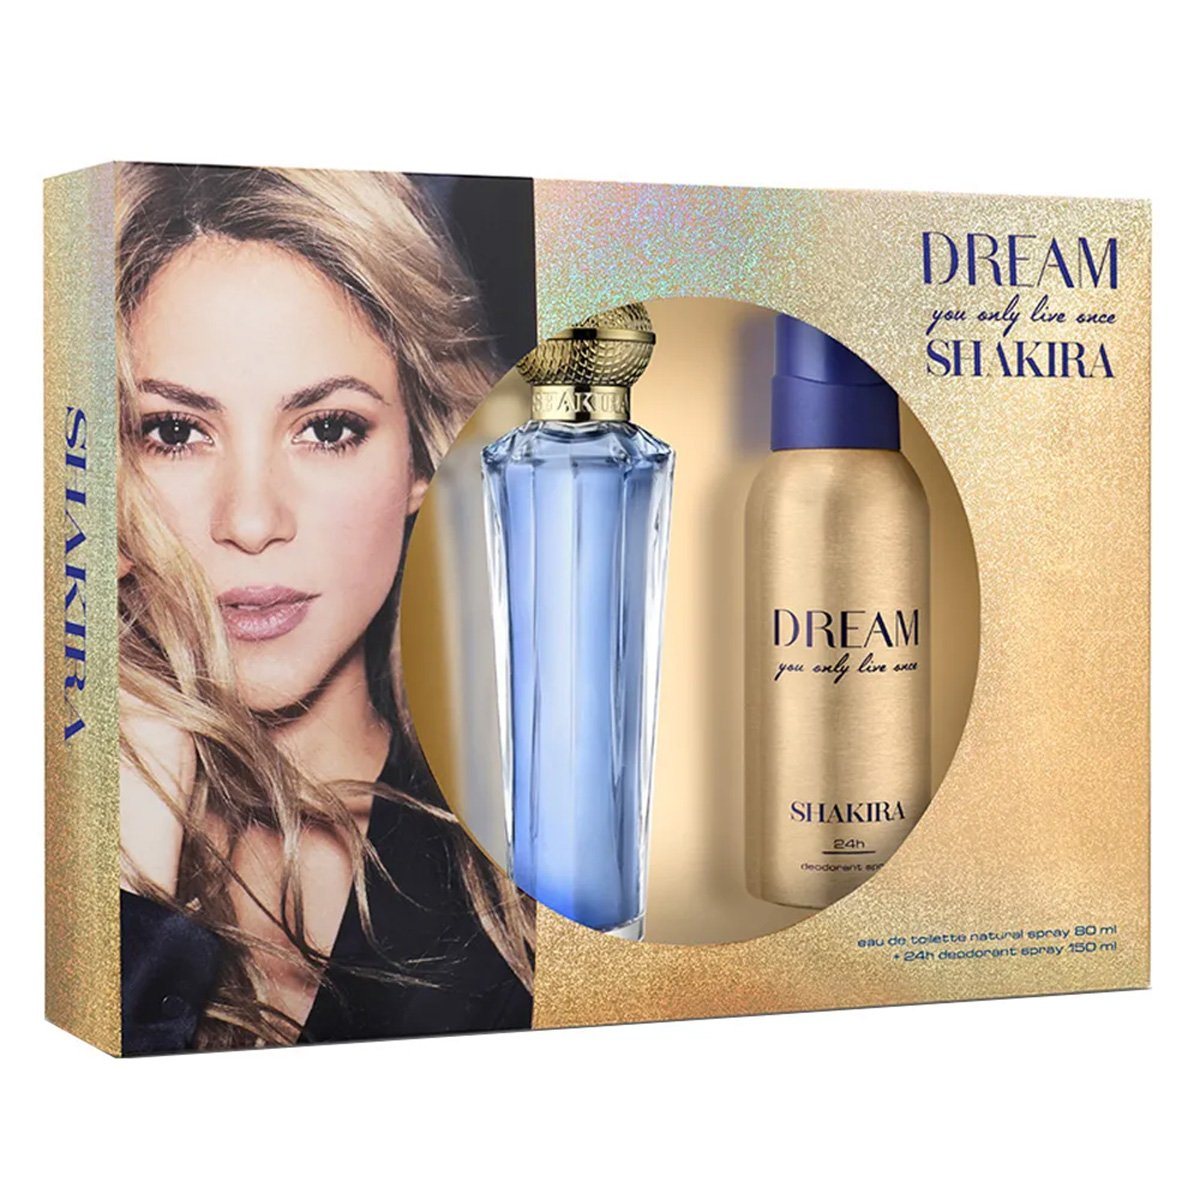 Shakira Dream Kit - Eau de Toilette 80ml + Desodorante 150ml